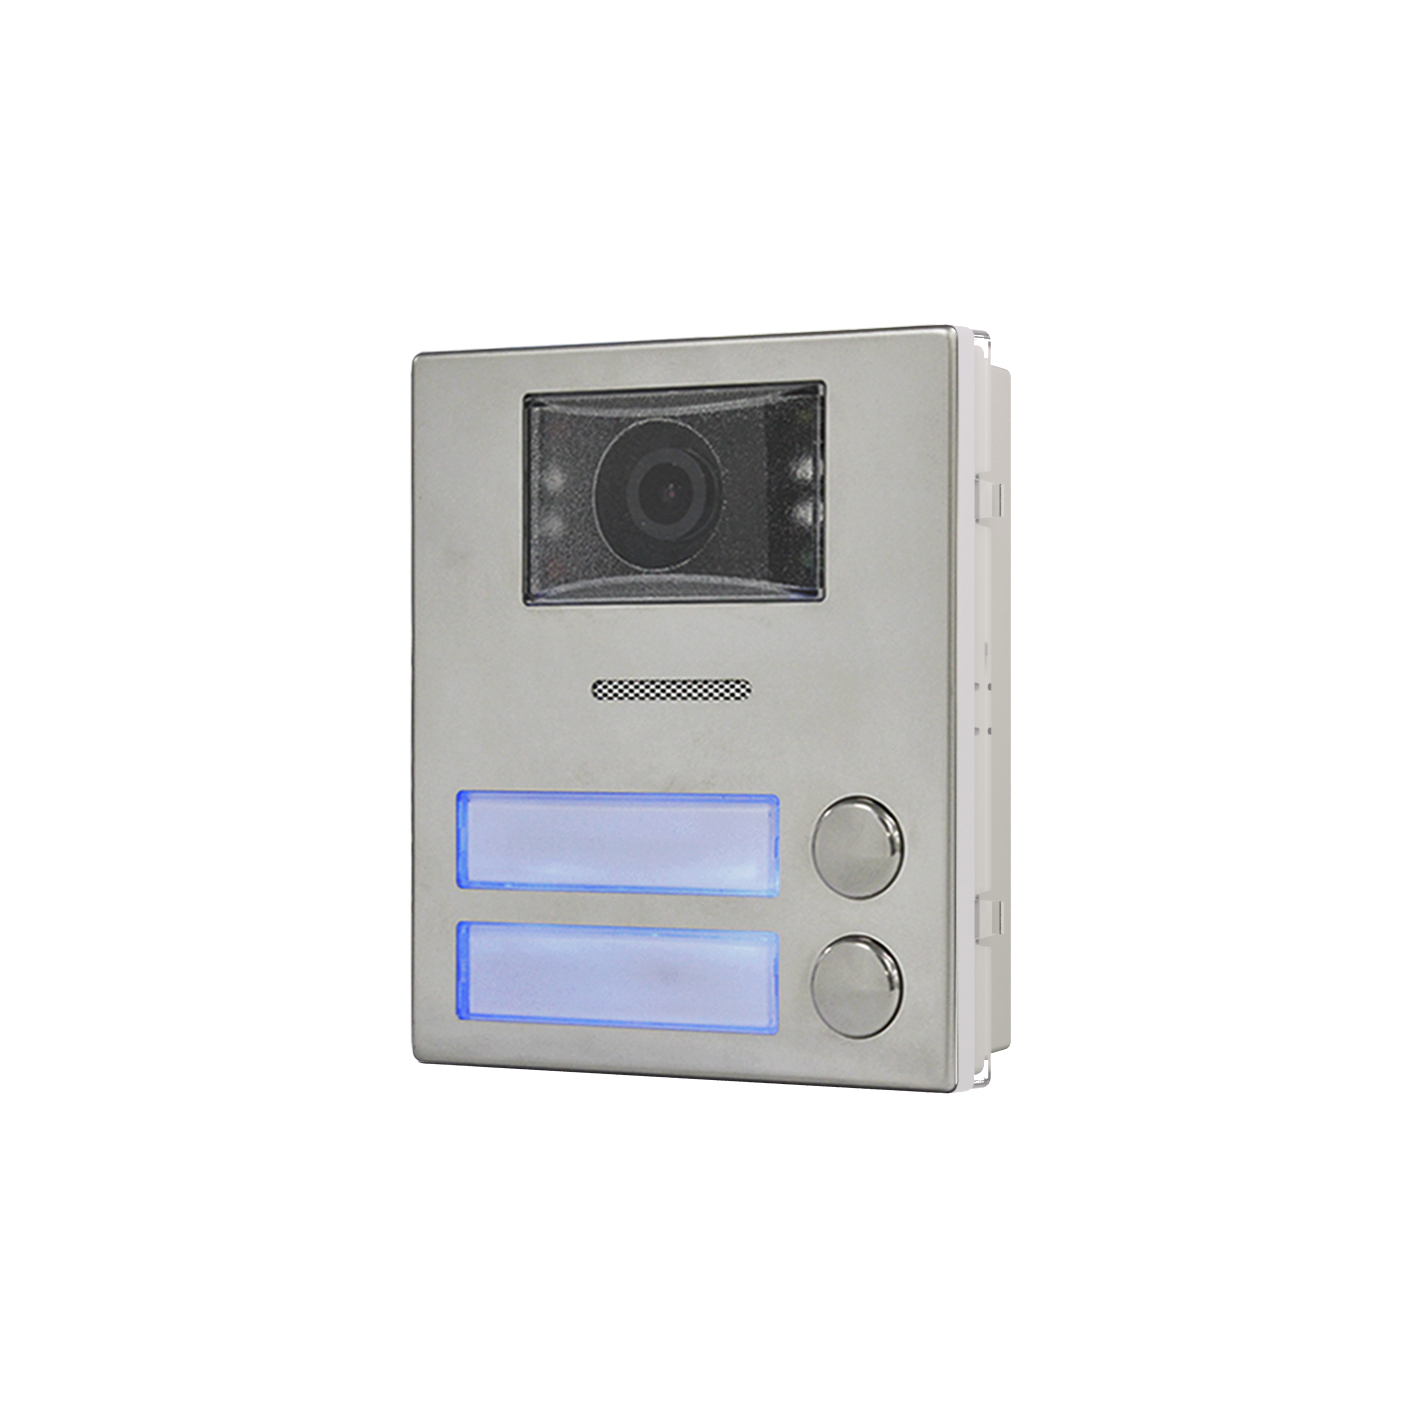 2 button 4000 Series IP colour video/speaker module